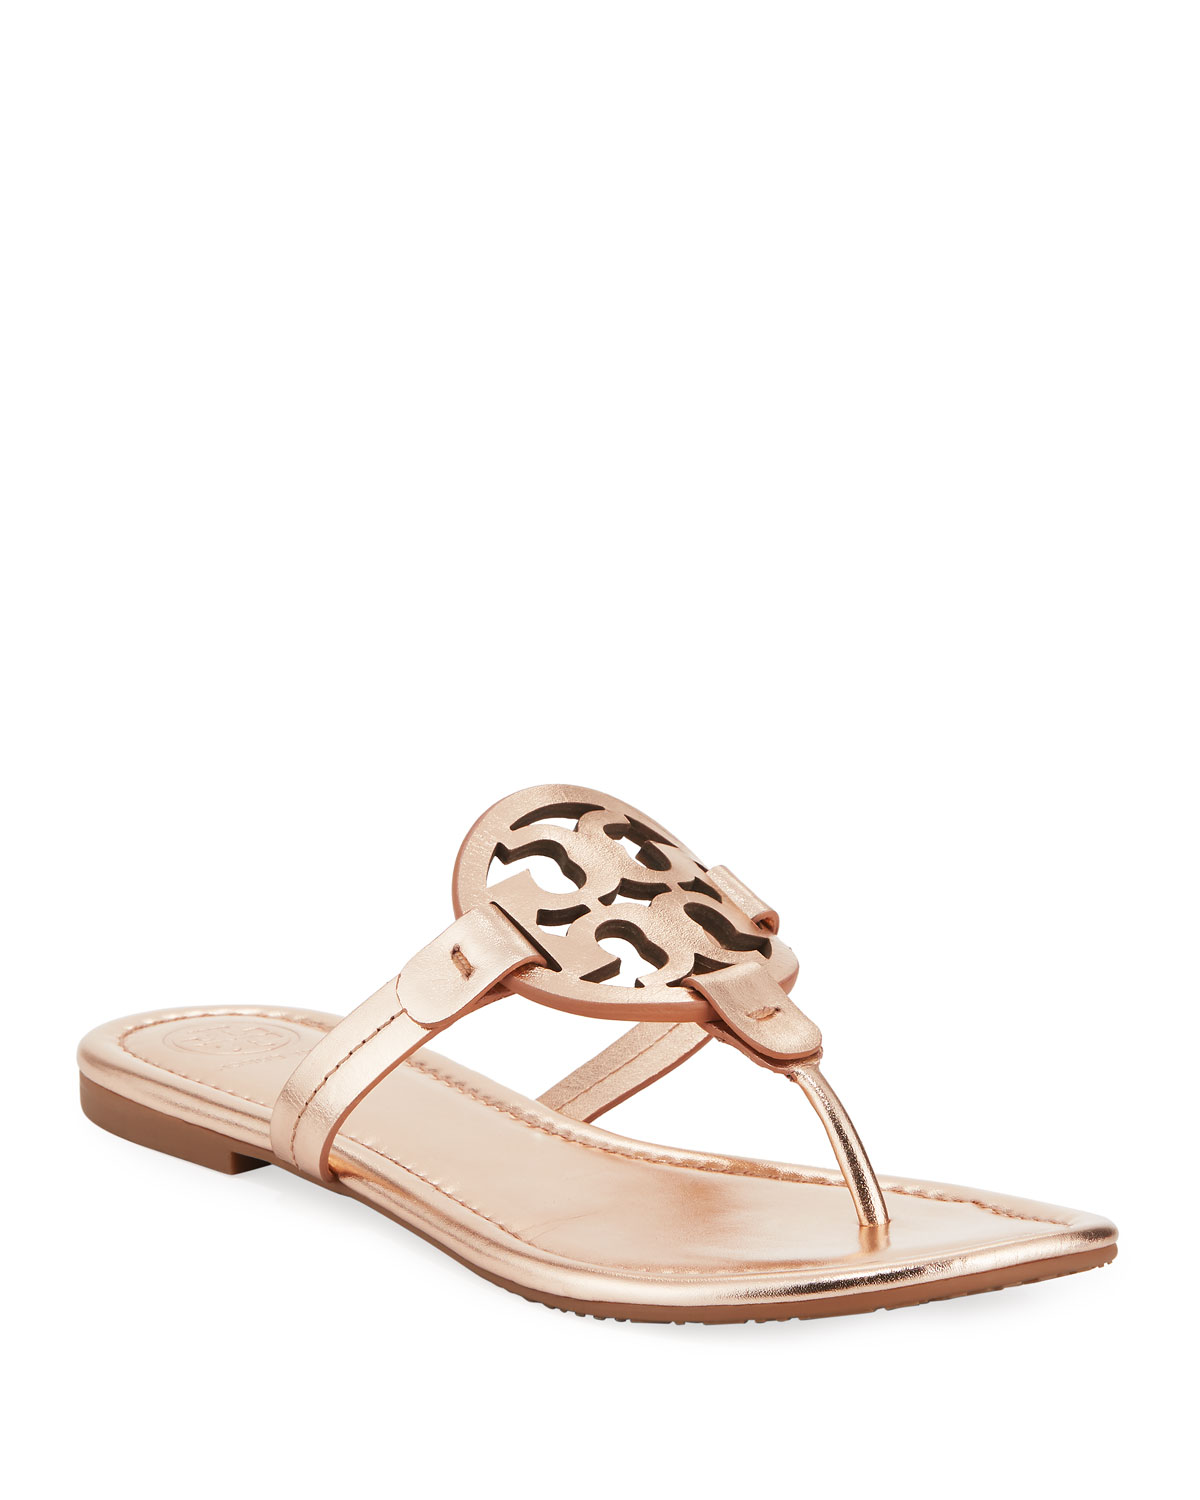 a04c73aed49 Tory Burch Miller Medallion Metallic Leather Flat Slide Sandal ...